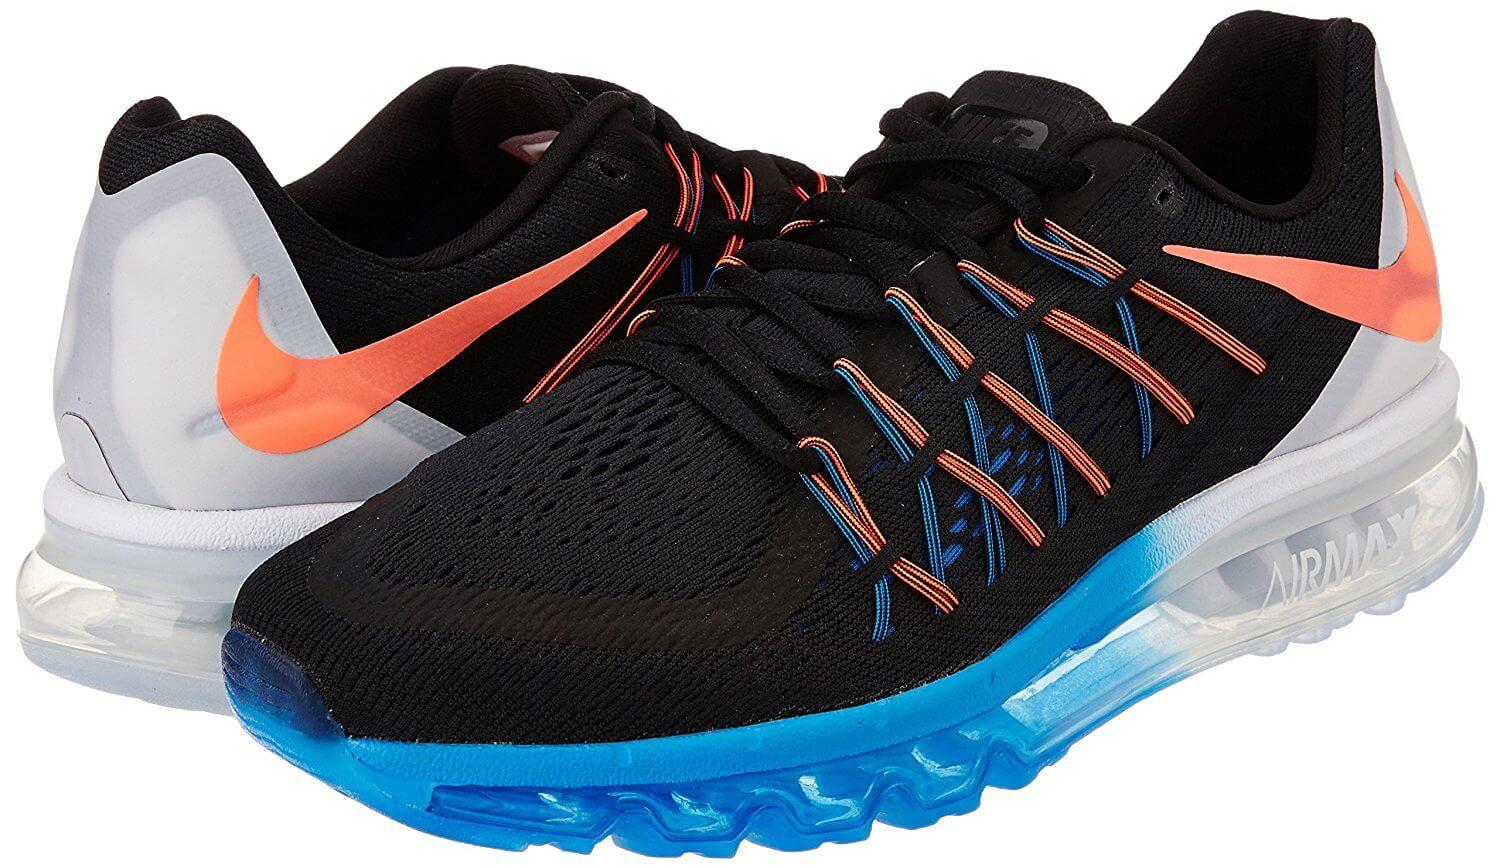 Though on the pricey end, the Nike Air Max 2015 is a quality shoe.